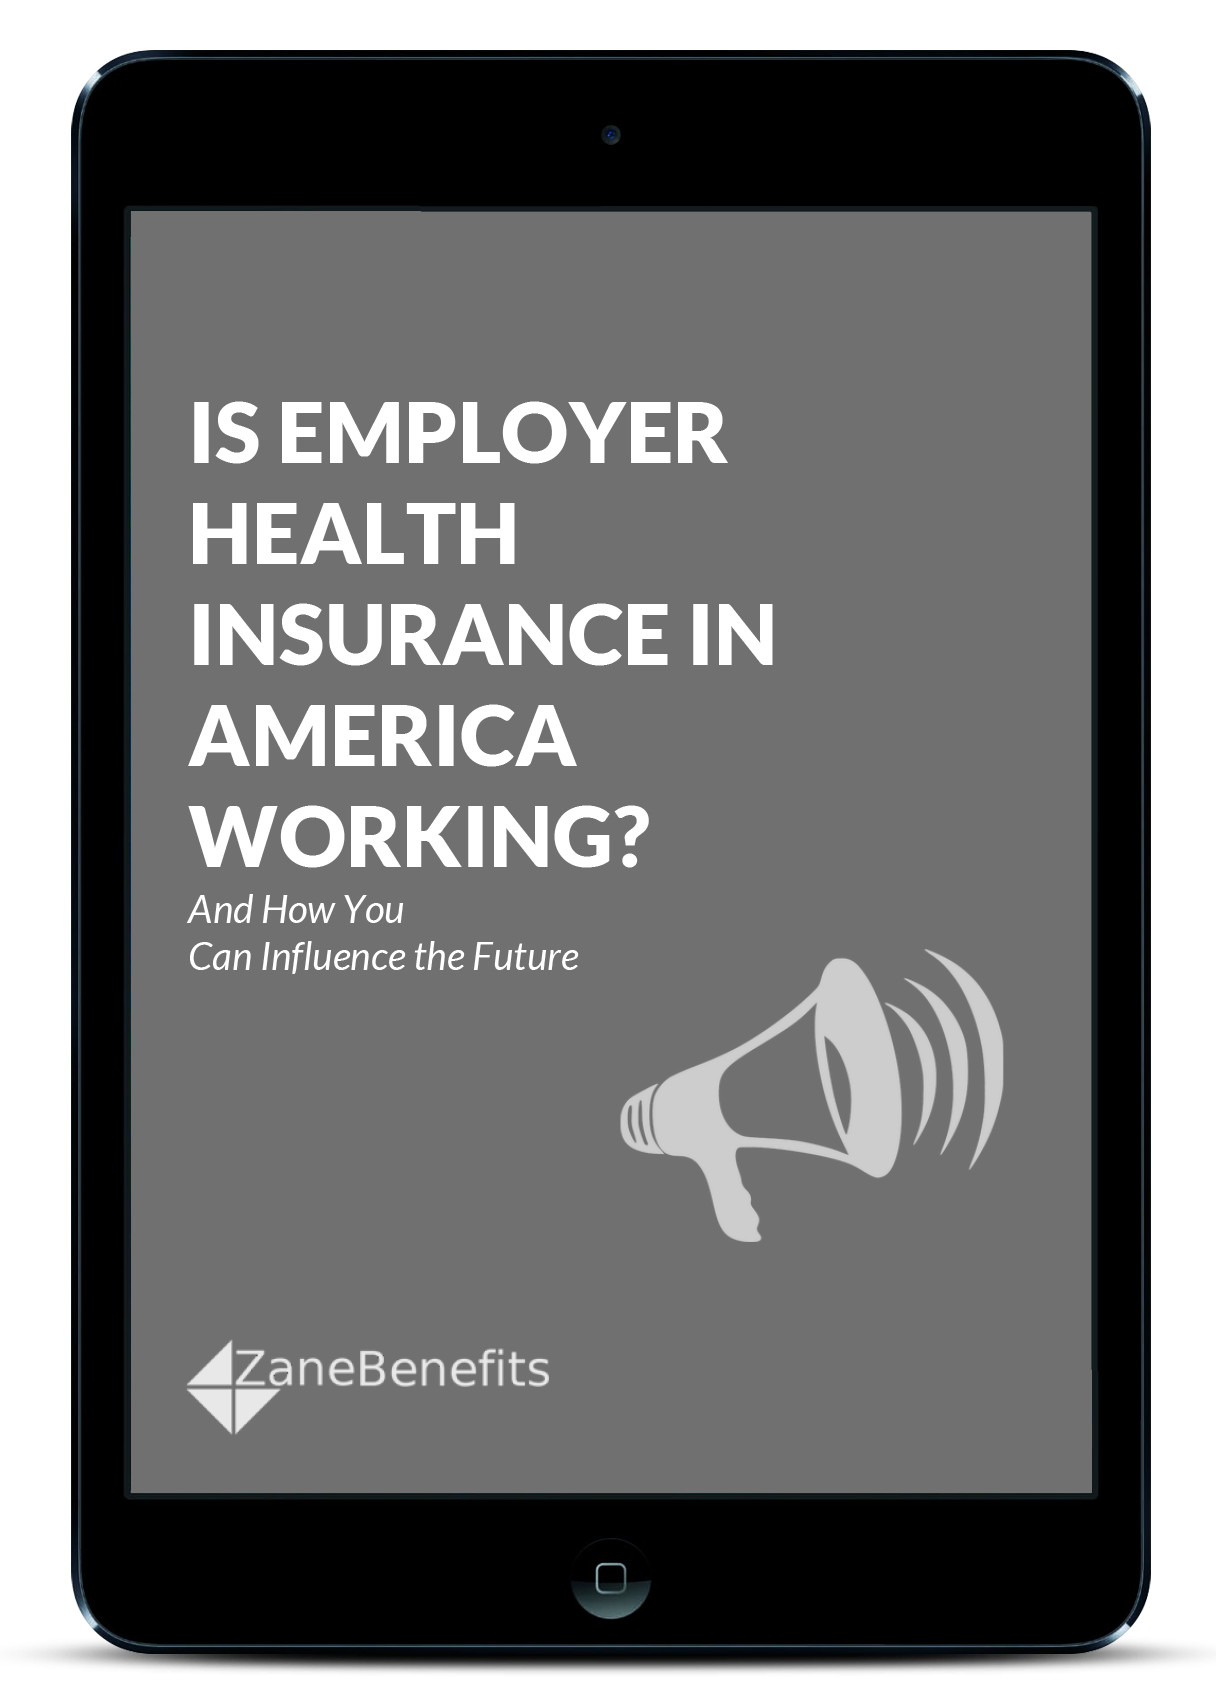 Is Employer Health Insurance in America Working?